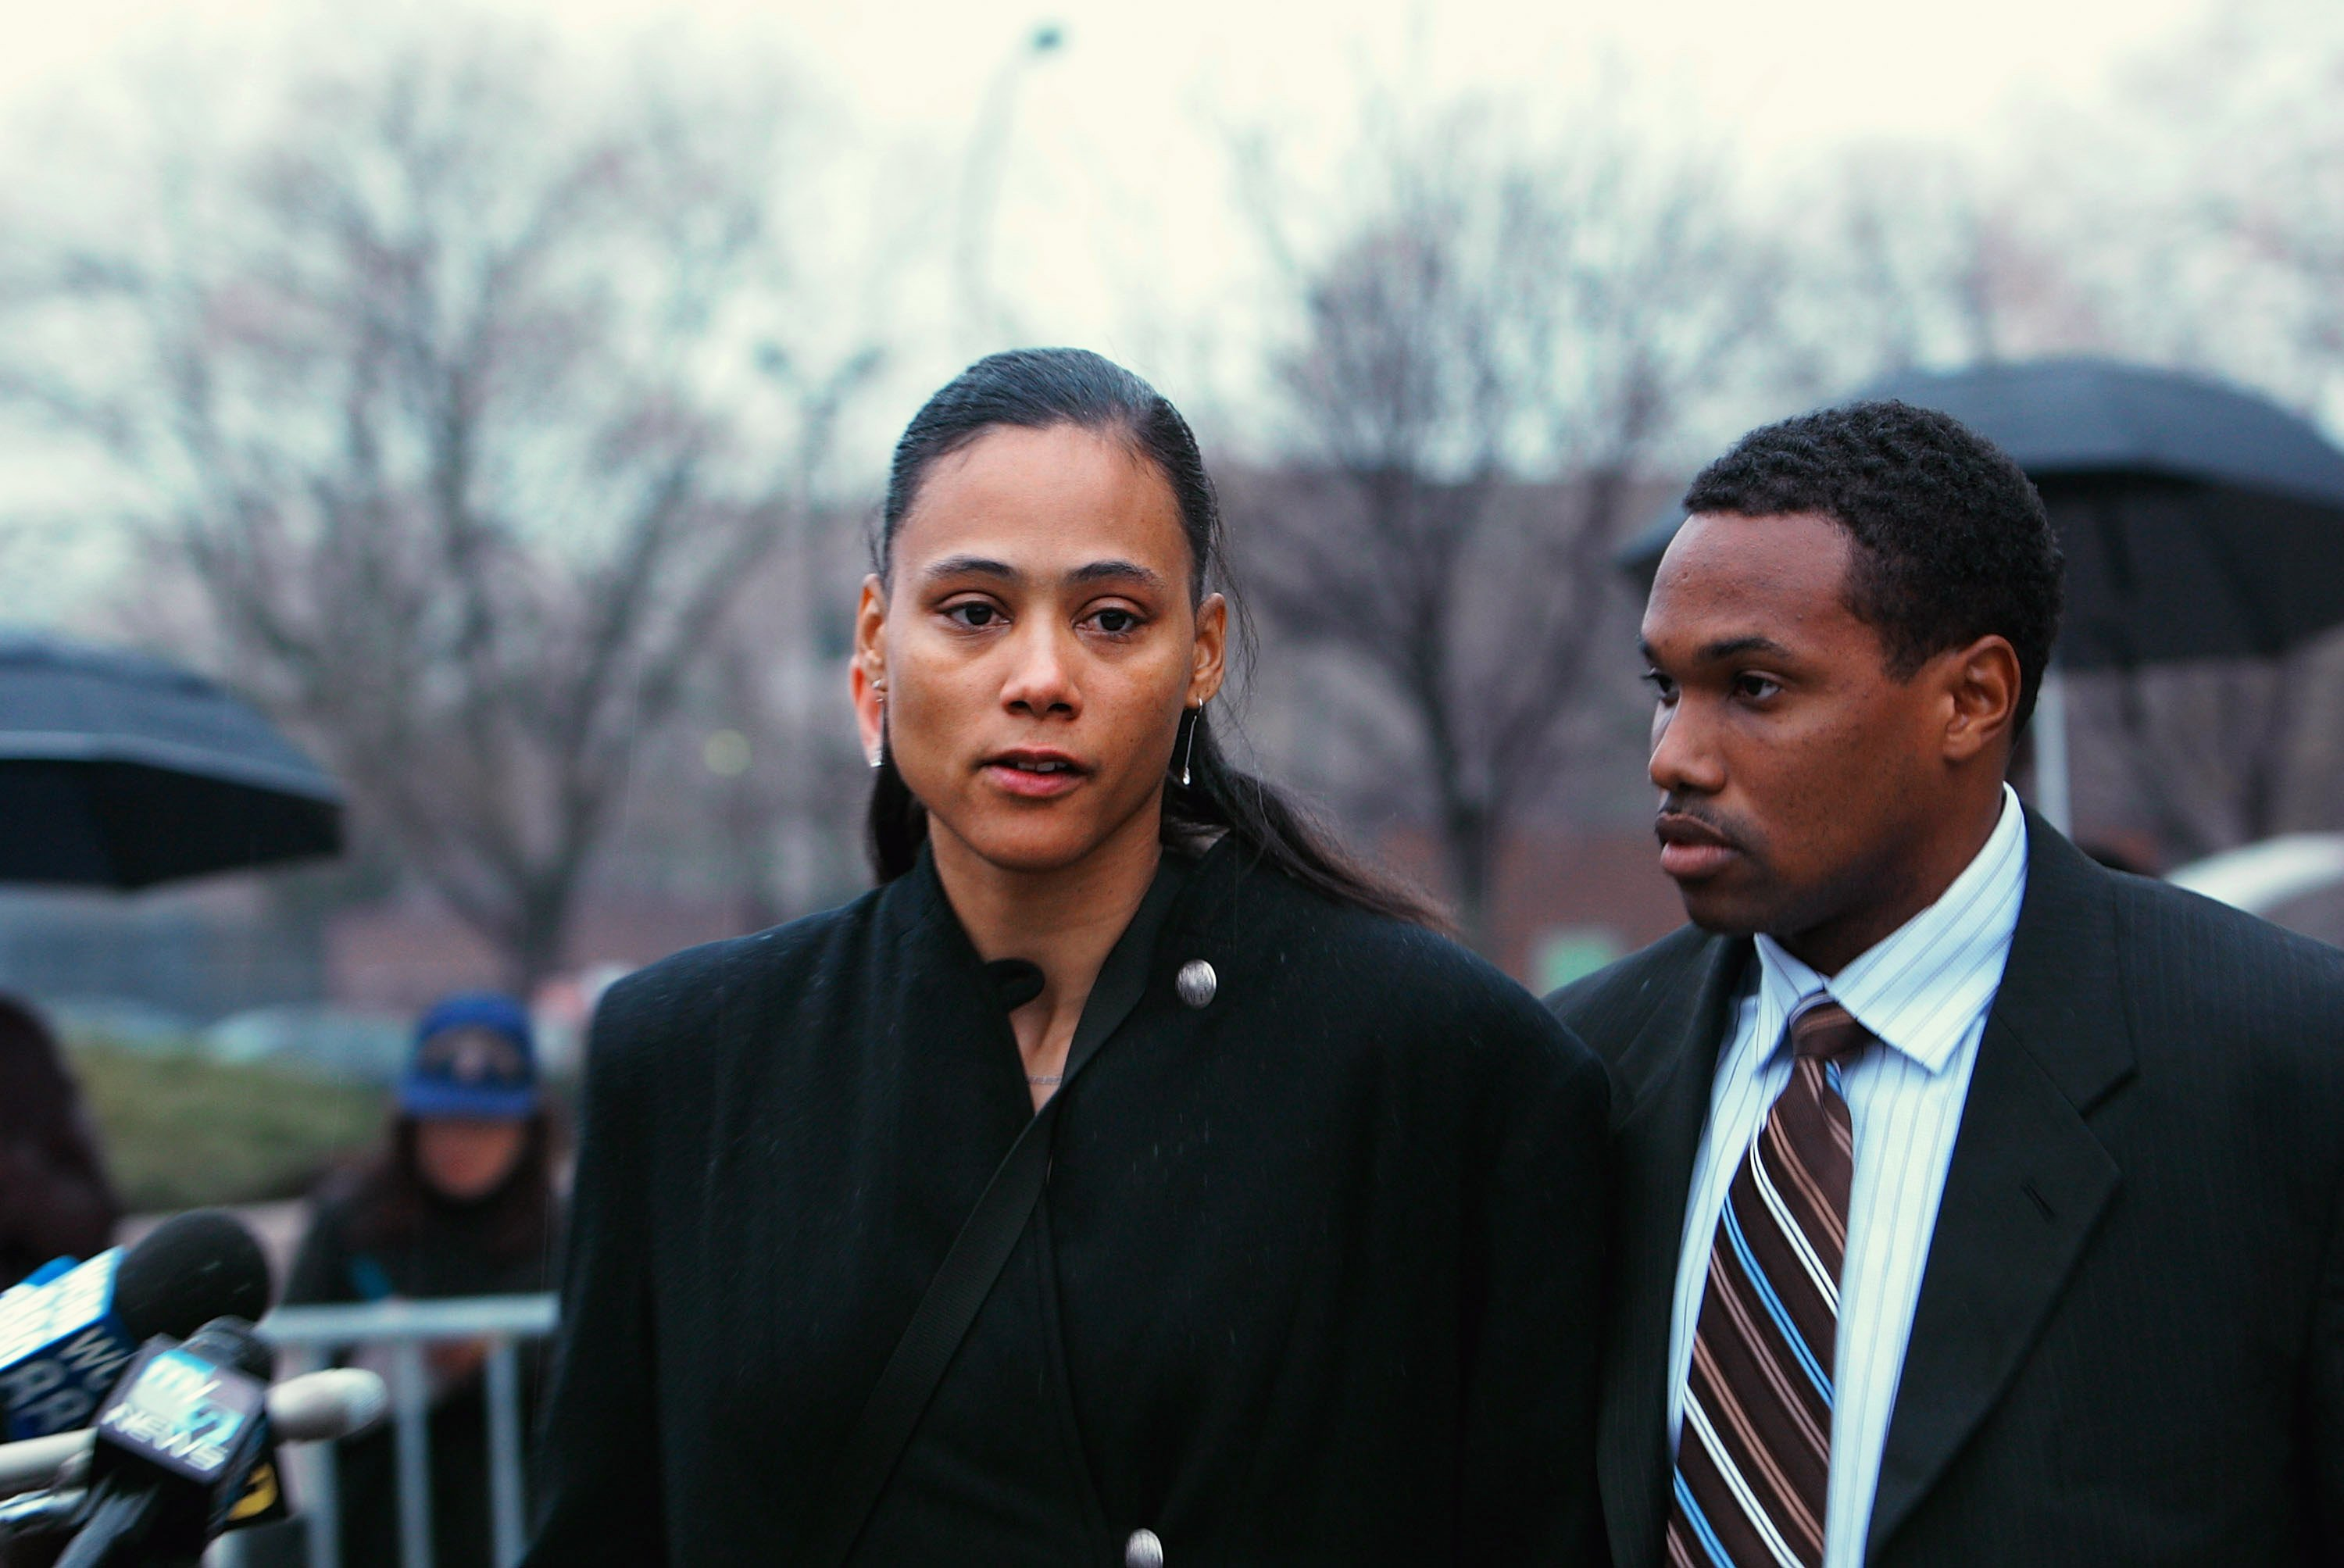 Marion Jones stands with her husband Obadele Thompson after she leaves court on January 11, 2008, in White Plains, New York | Photo: Chris Hondros/Getty Images